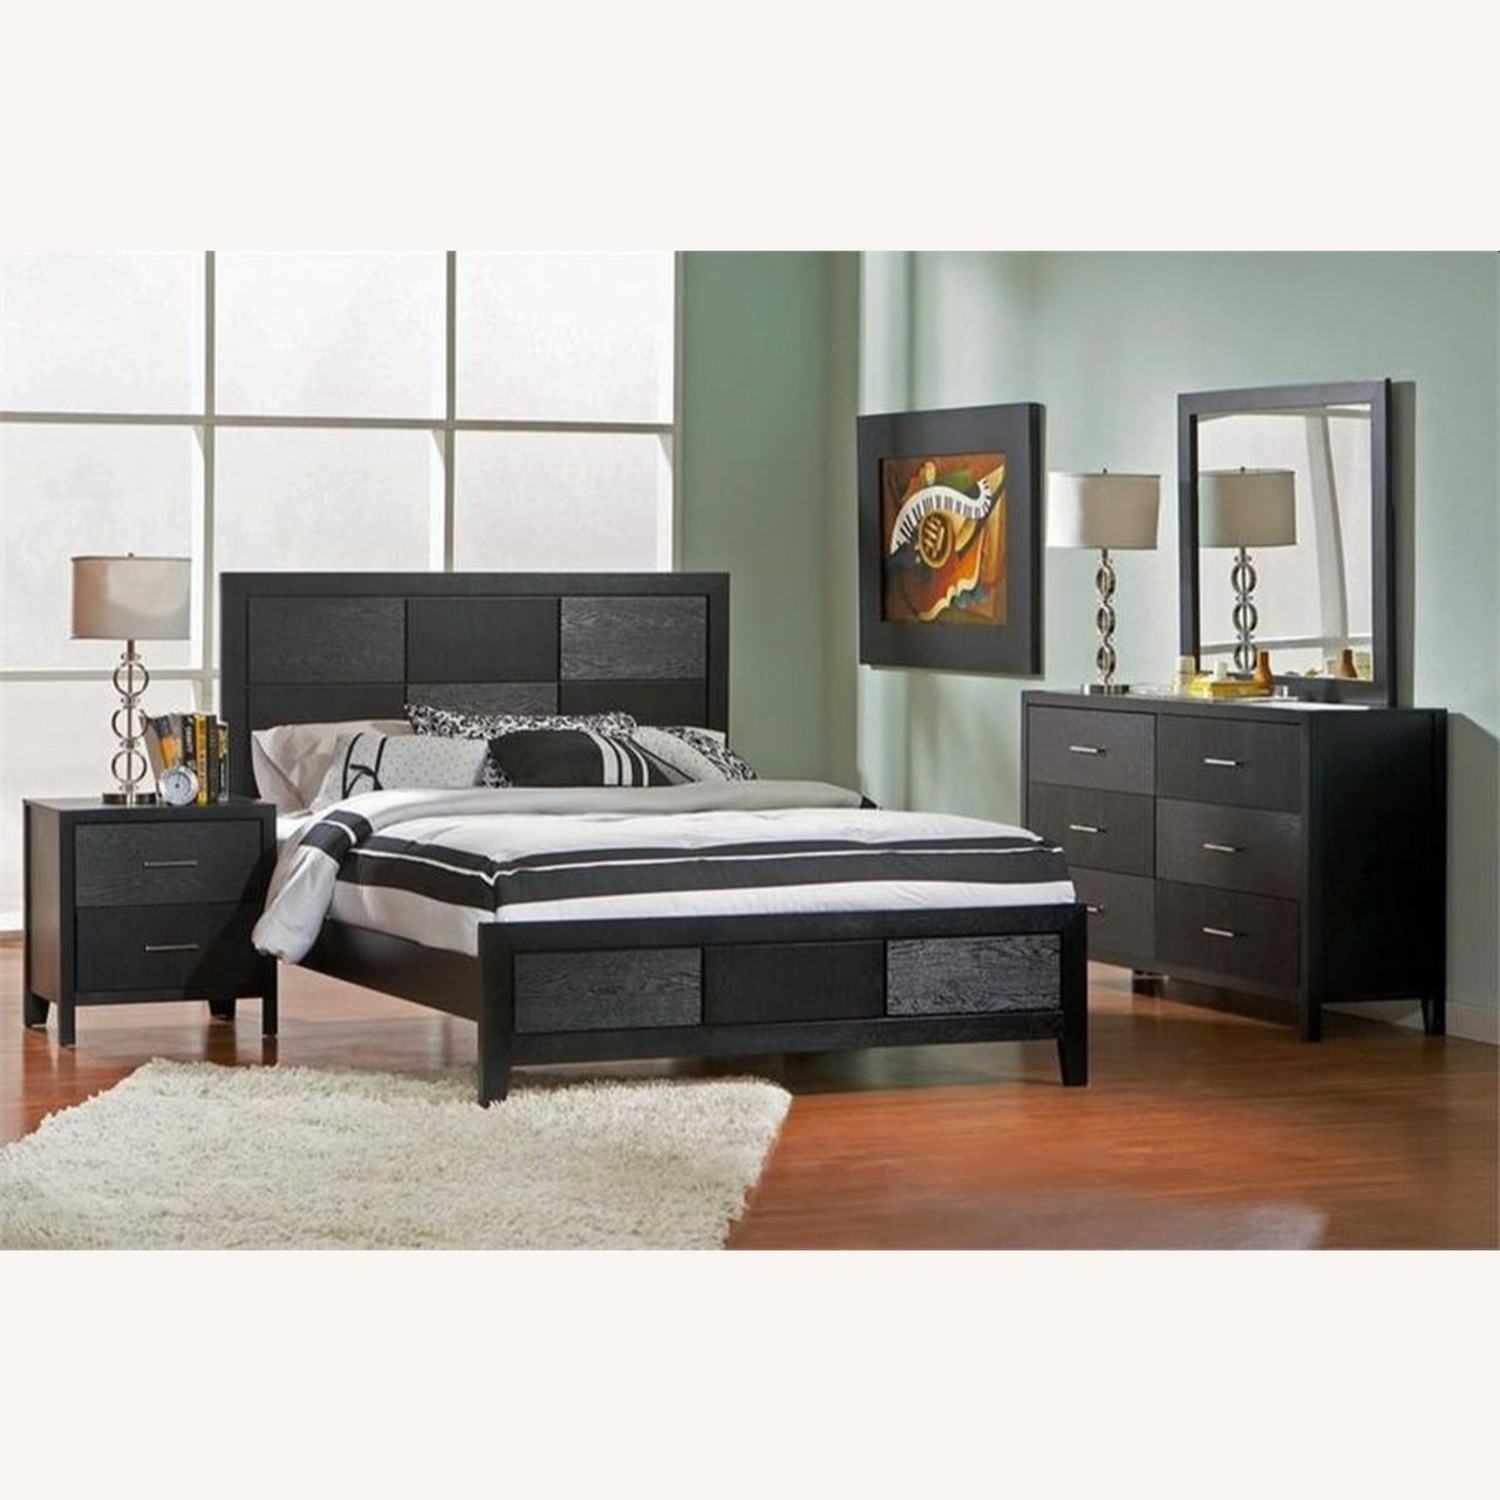 King Bed In Black W/ Geometric Checkered Detail - image-3